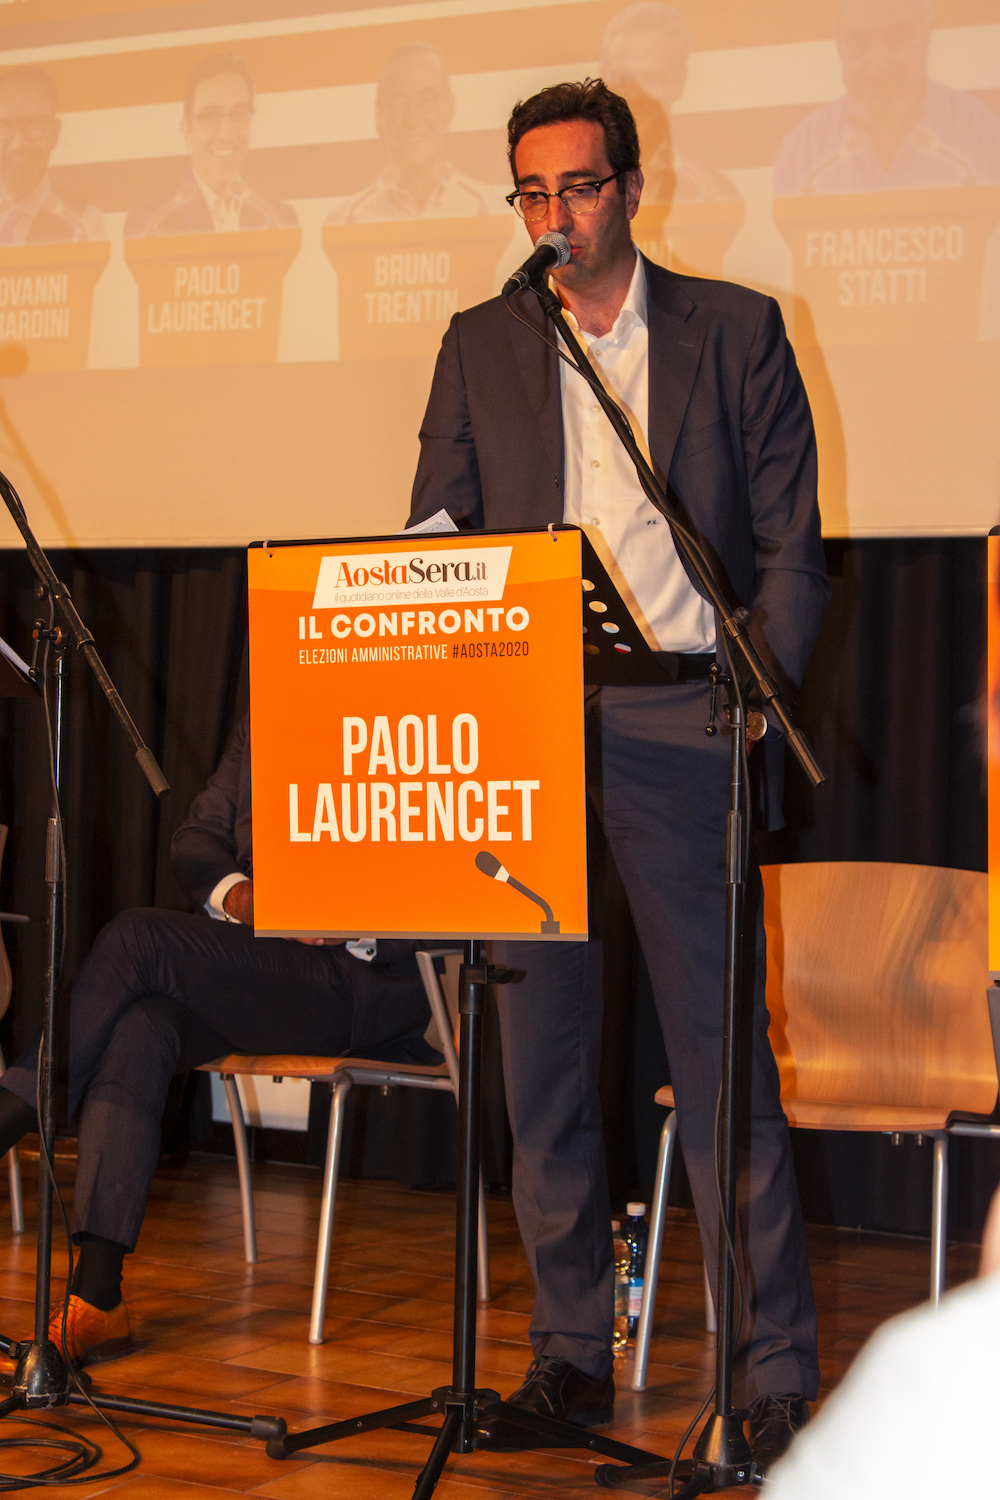 Paolo Laurencet